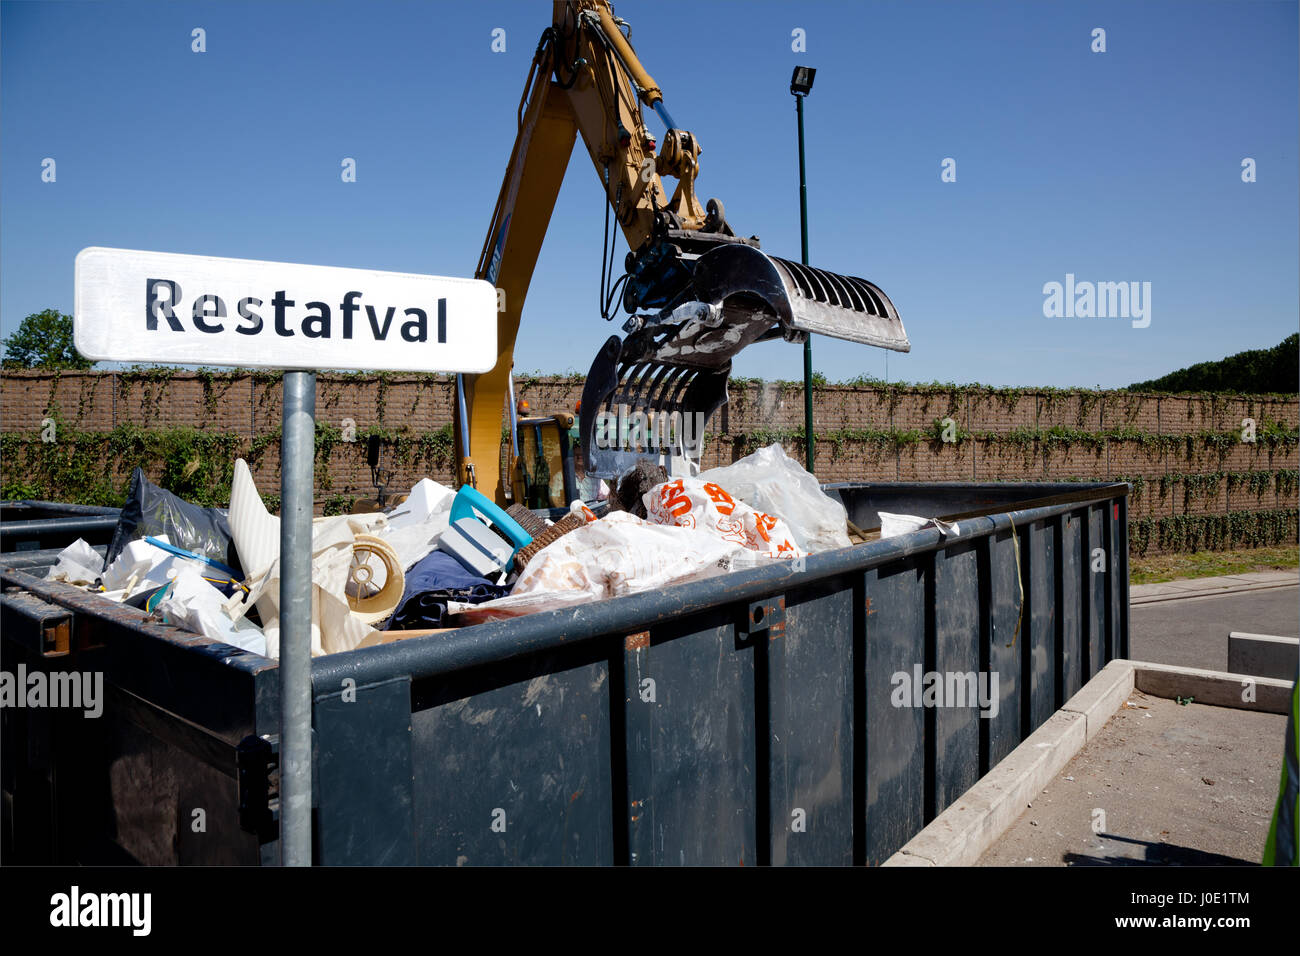 rest afval container in milieustraat Stock Photo